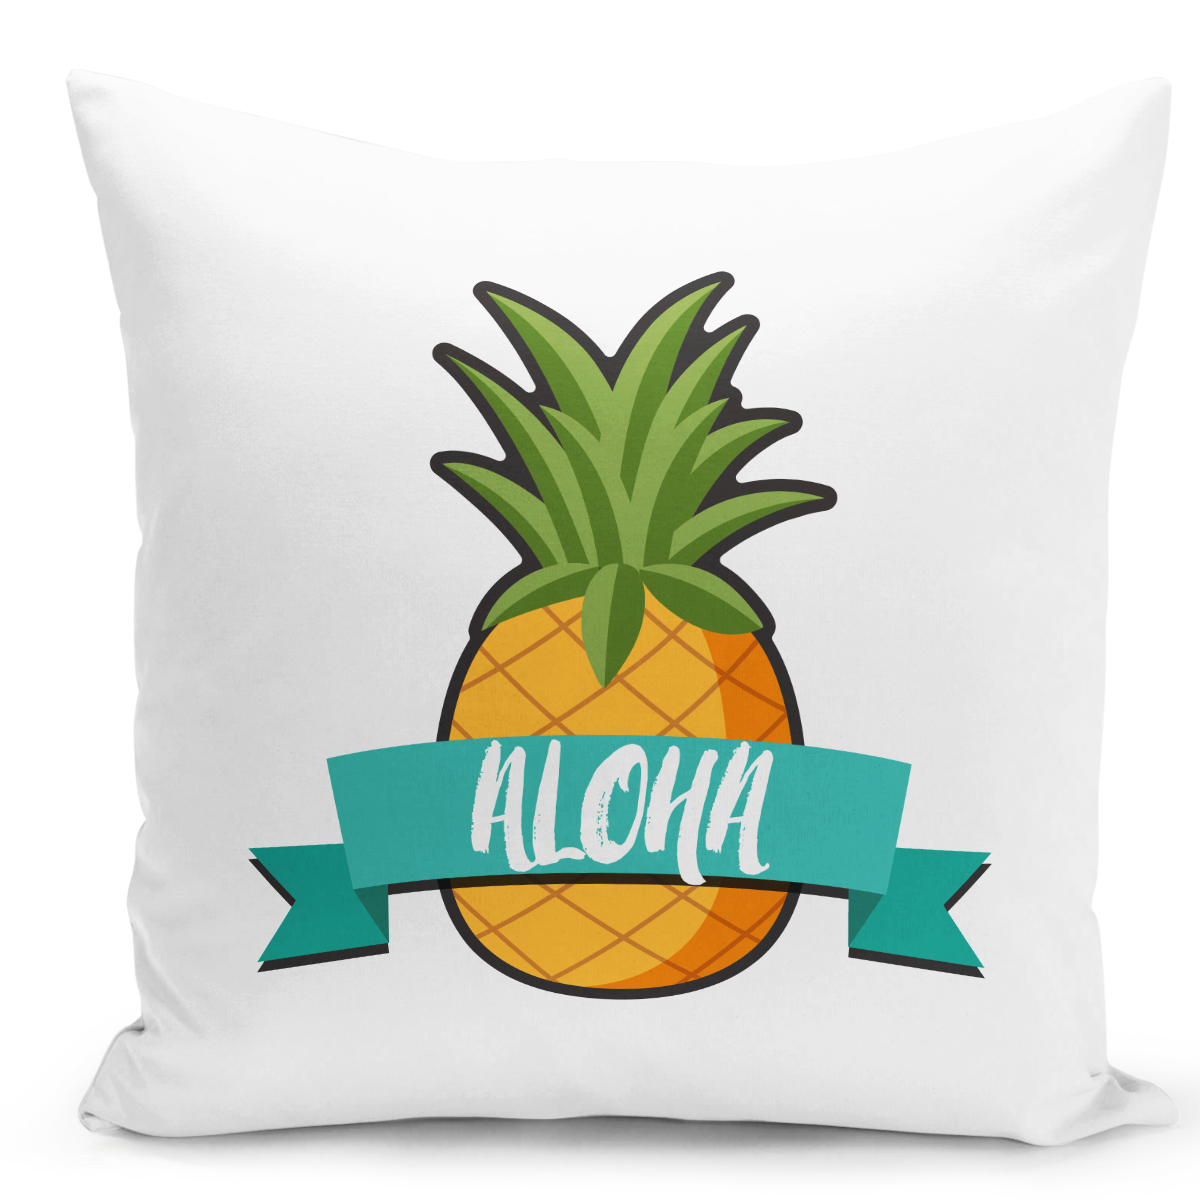 White-Throw-Pillow-Aloha-Tropical-Fruit-Pineapple-Hawai-Pillow---High-Quality-White-16-x-16-inch-Square-Home-Office-Decor-Accent-Pillow-